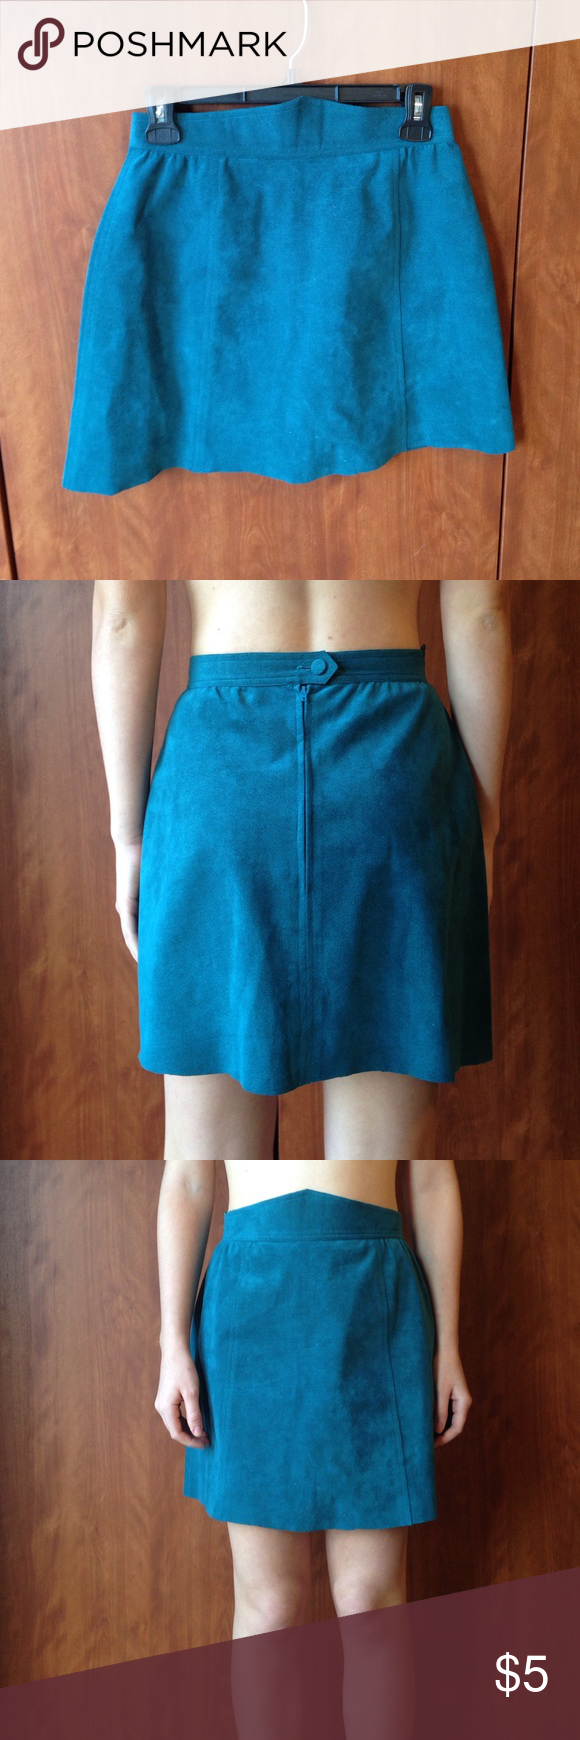 Teal mini skater skirt Very comfy material! I'm pretty sure it's suede :) make me an offer Skirts Circle & Skater